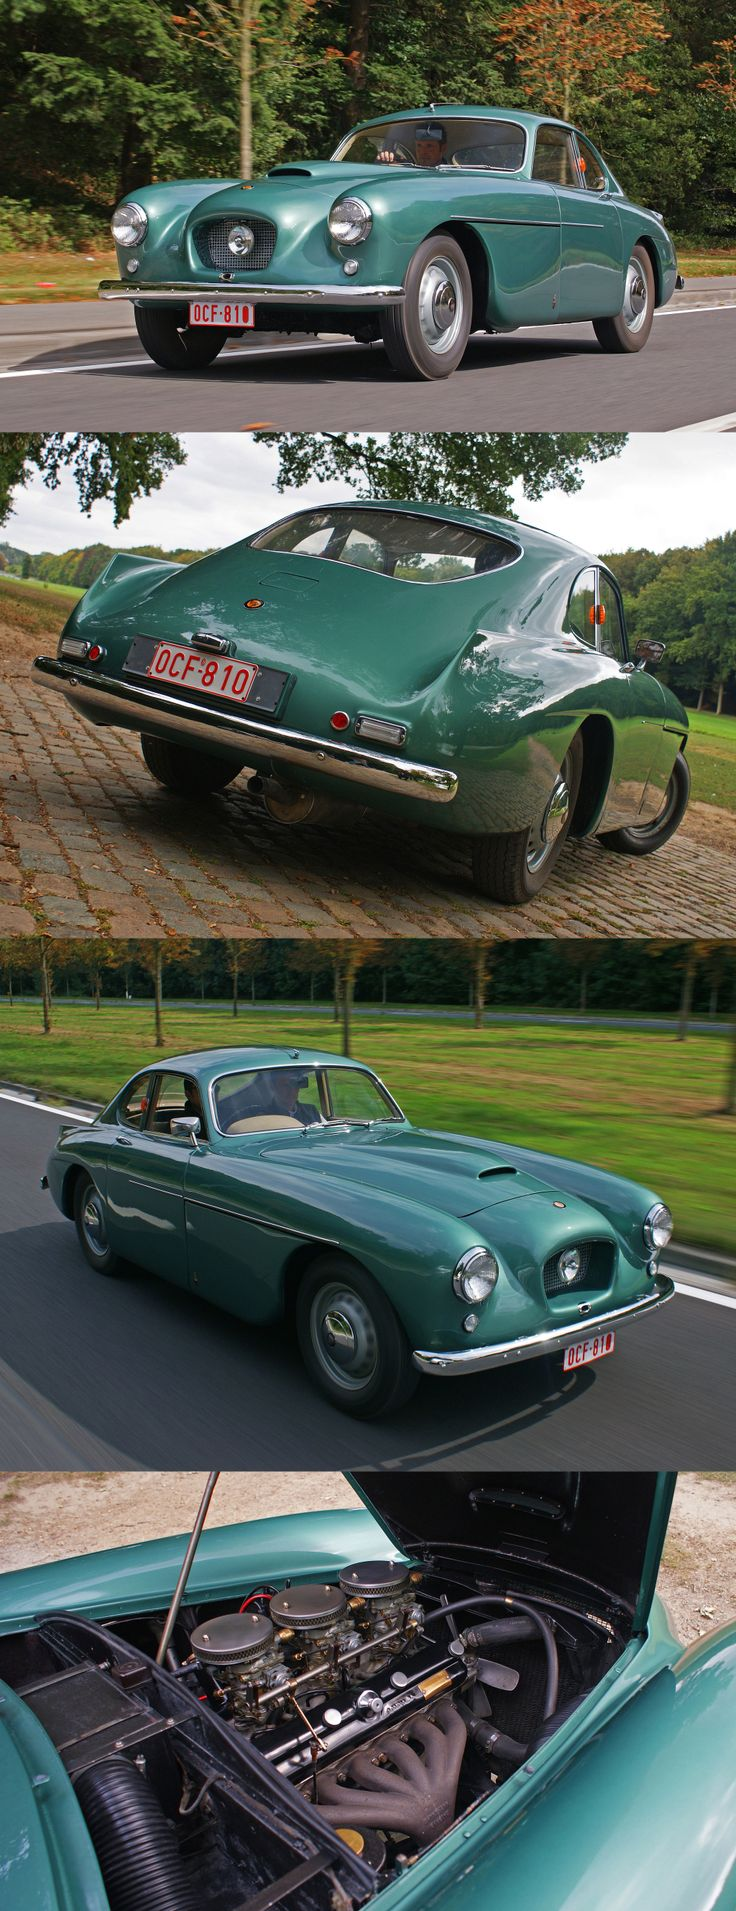 1953 Bristol 404 /12 Cylinder, Three Quads in a vehicle that weighs a little more than a 1965 Ford Falcon.